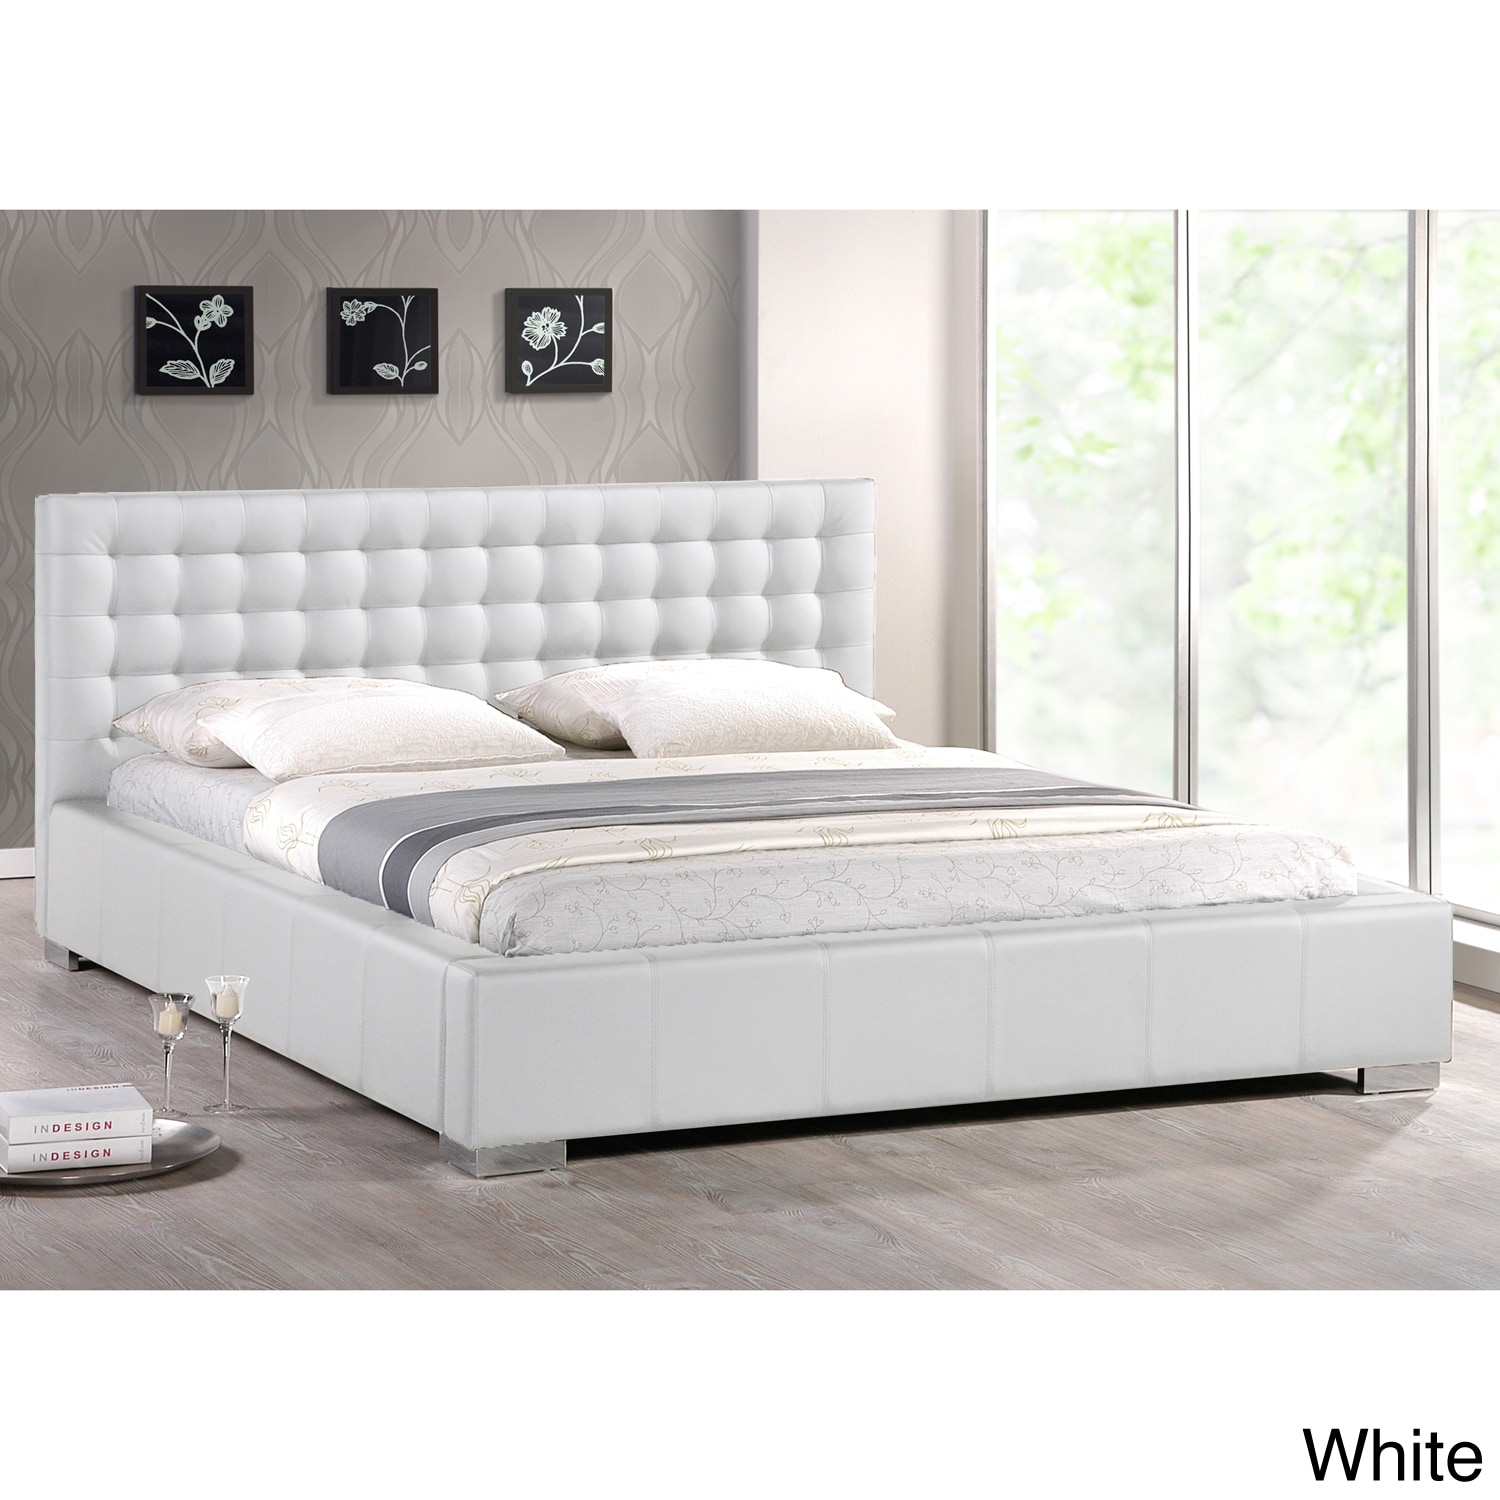 Baxton Studio Madison White Modern Full Size Bed With Upholstered Headboard